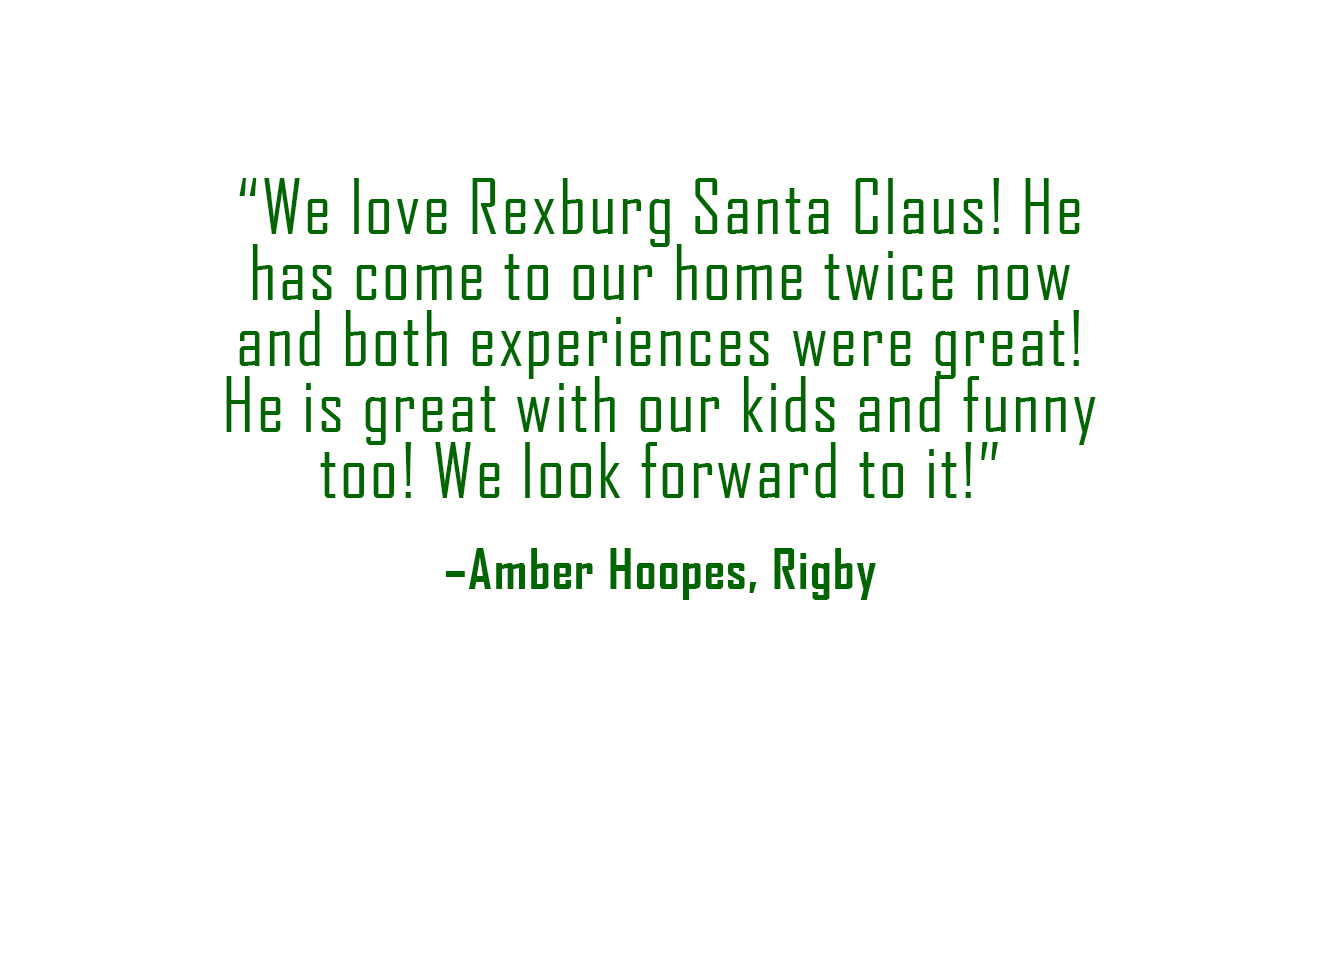 Review - Amber Hoopes